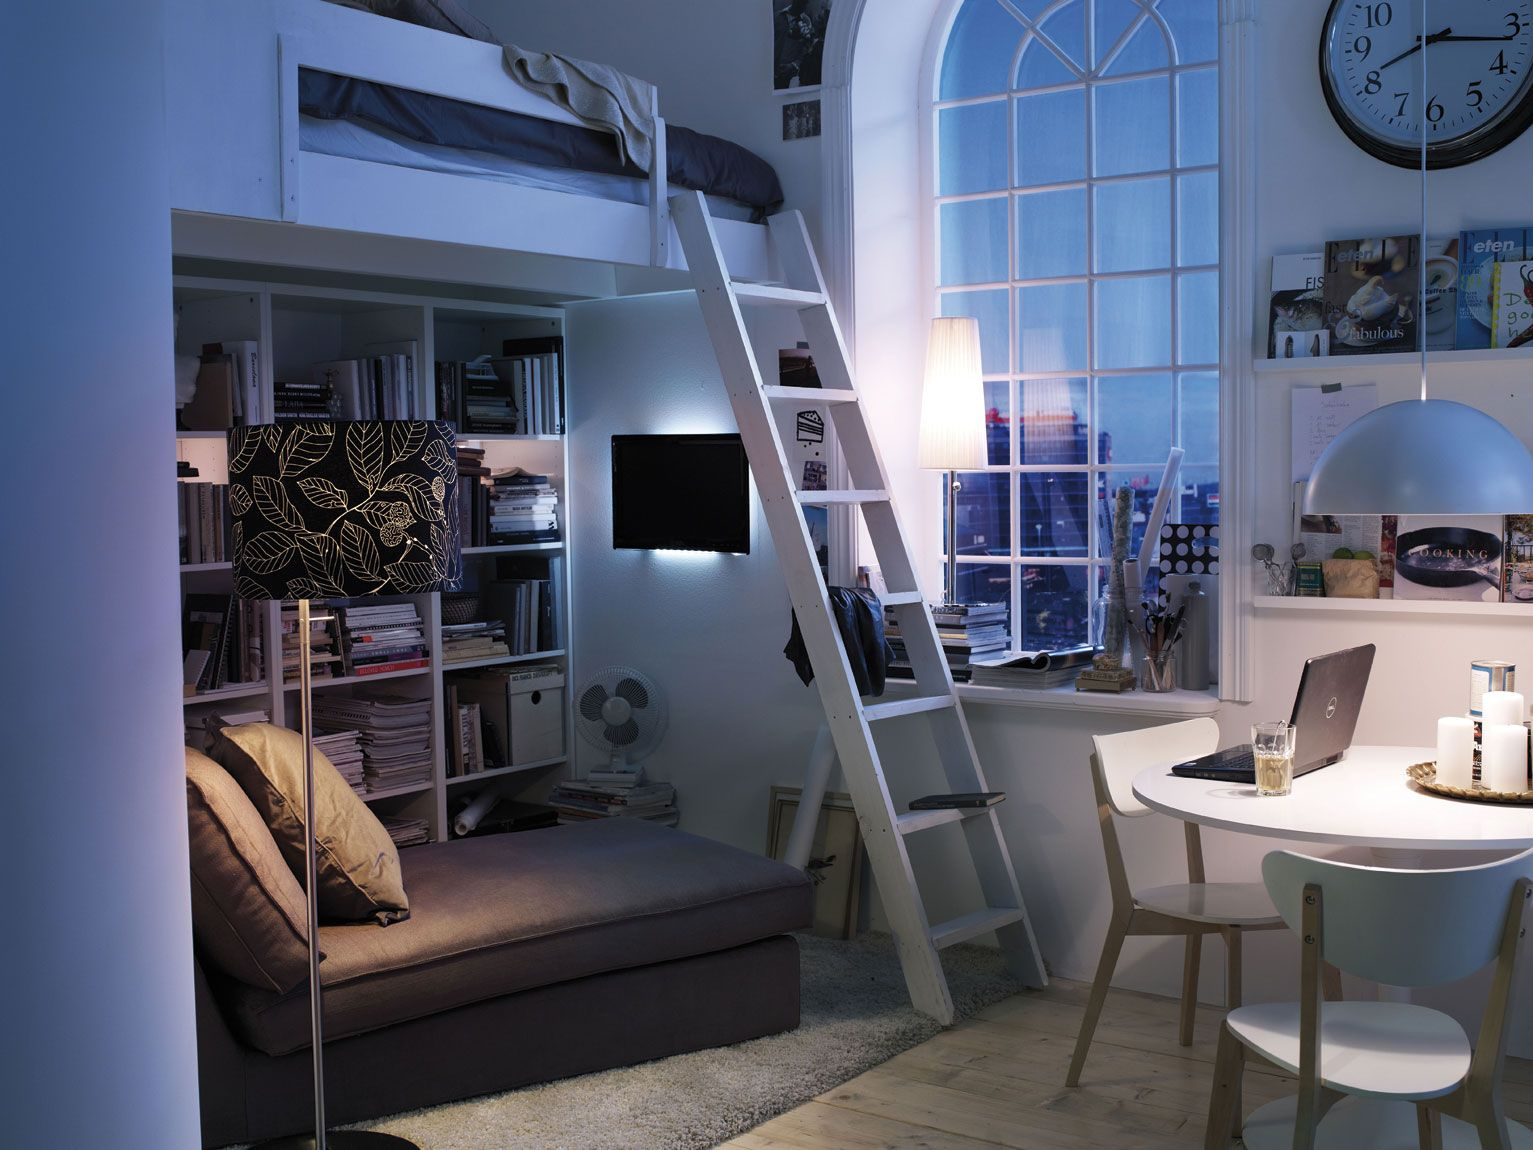 A Tiny Ikea Studio Apartment With Loft Bed And Cozy Sitting Nook Ikea Small Bedroom Ikea Studio Apartment Small Rooms